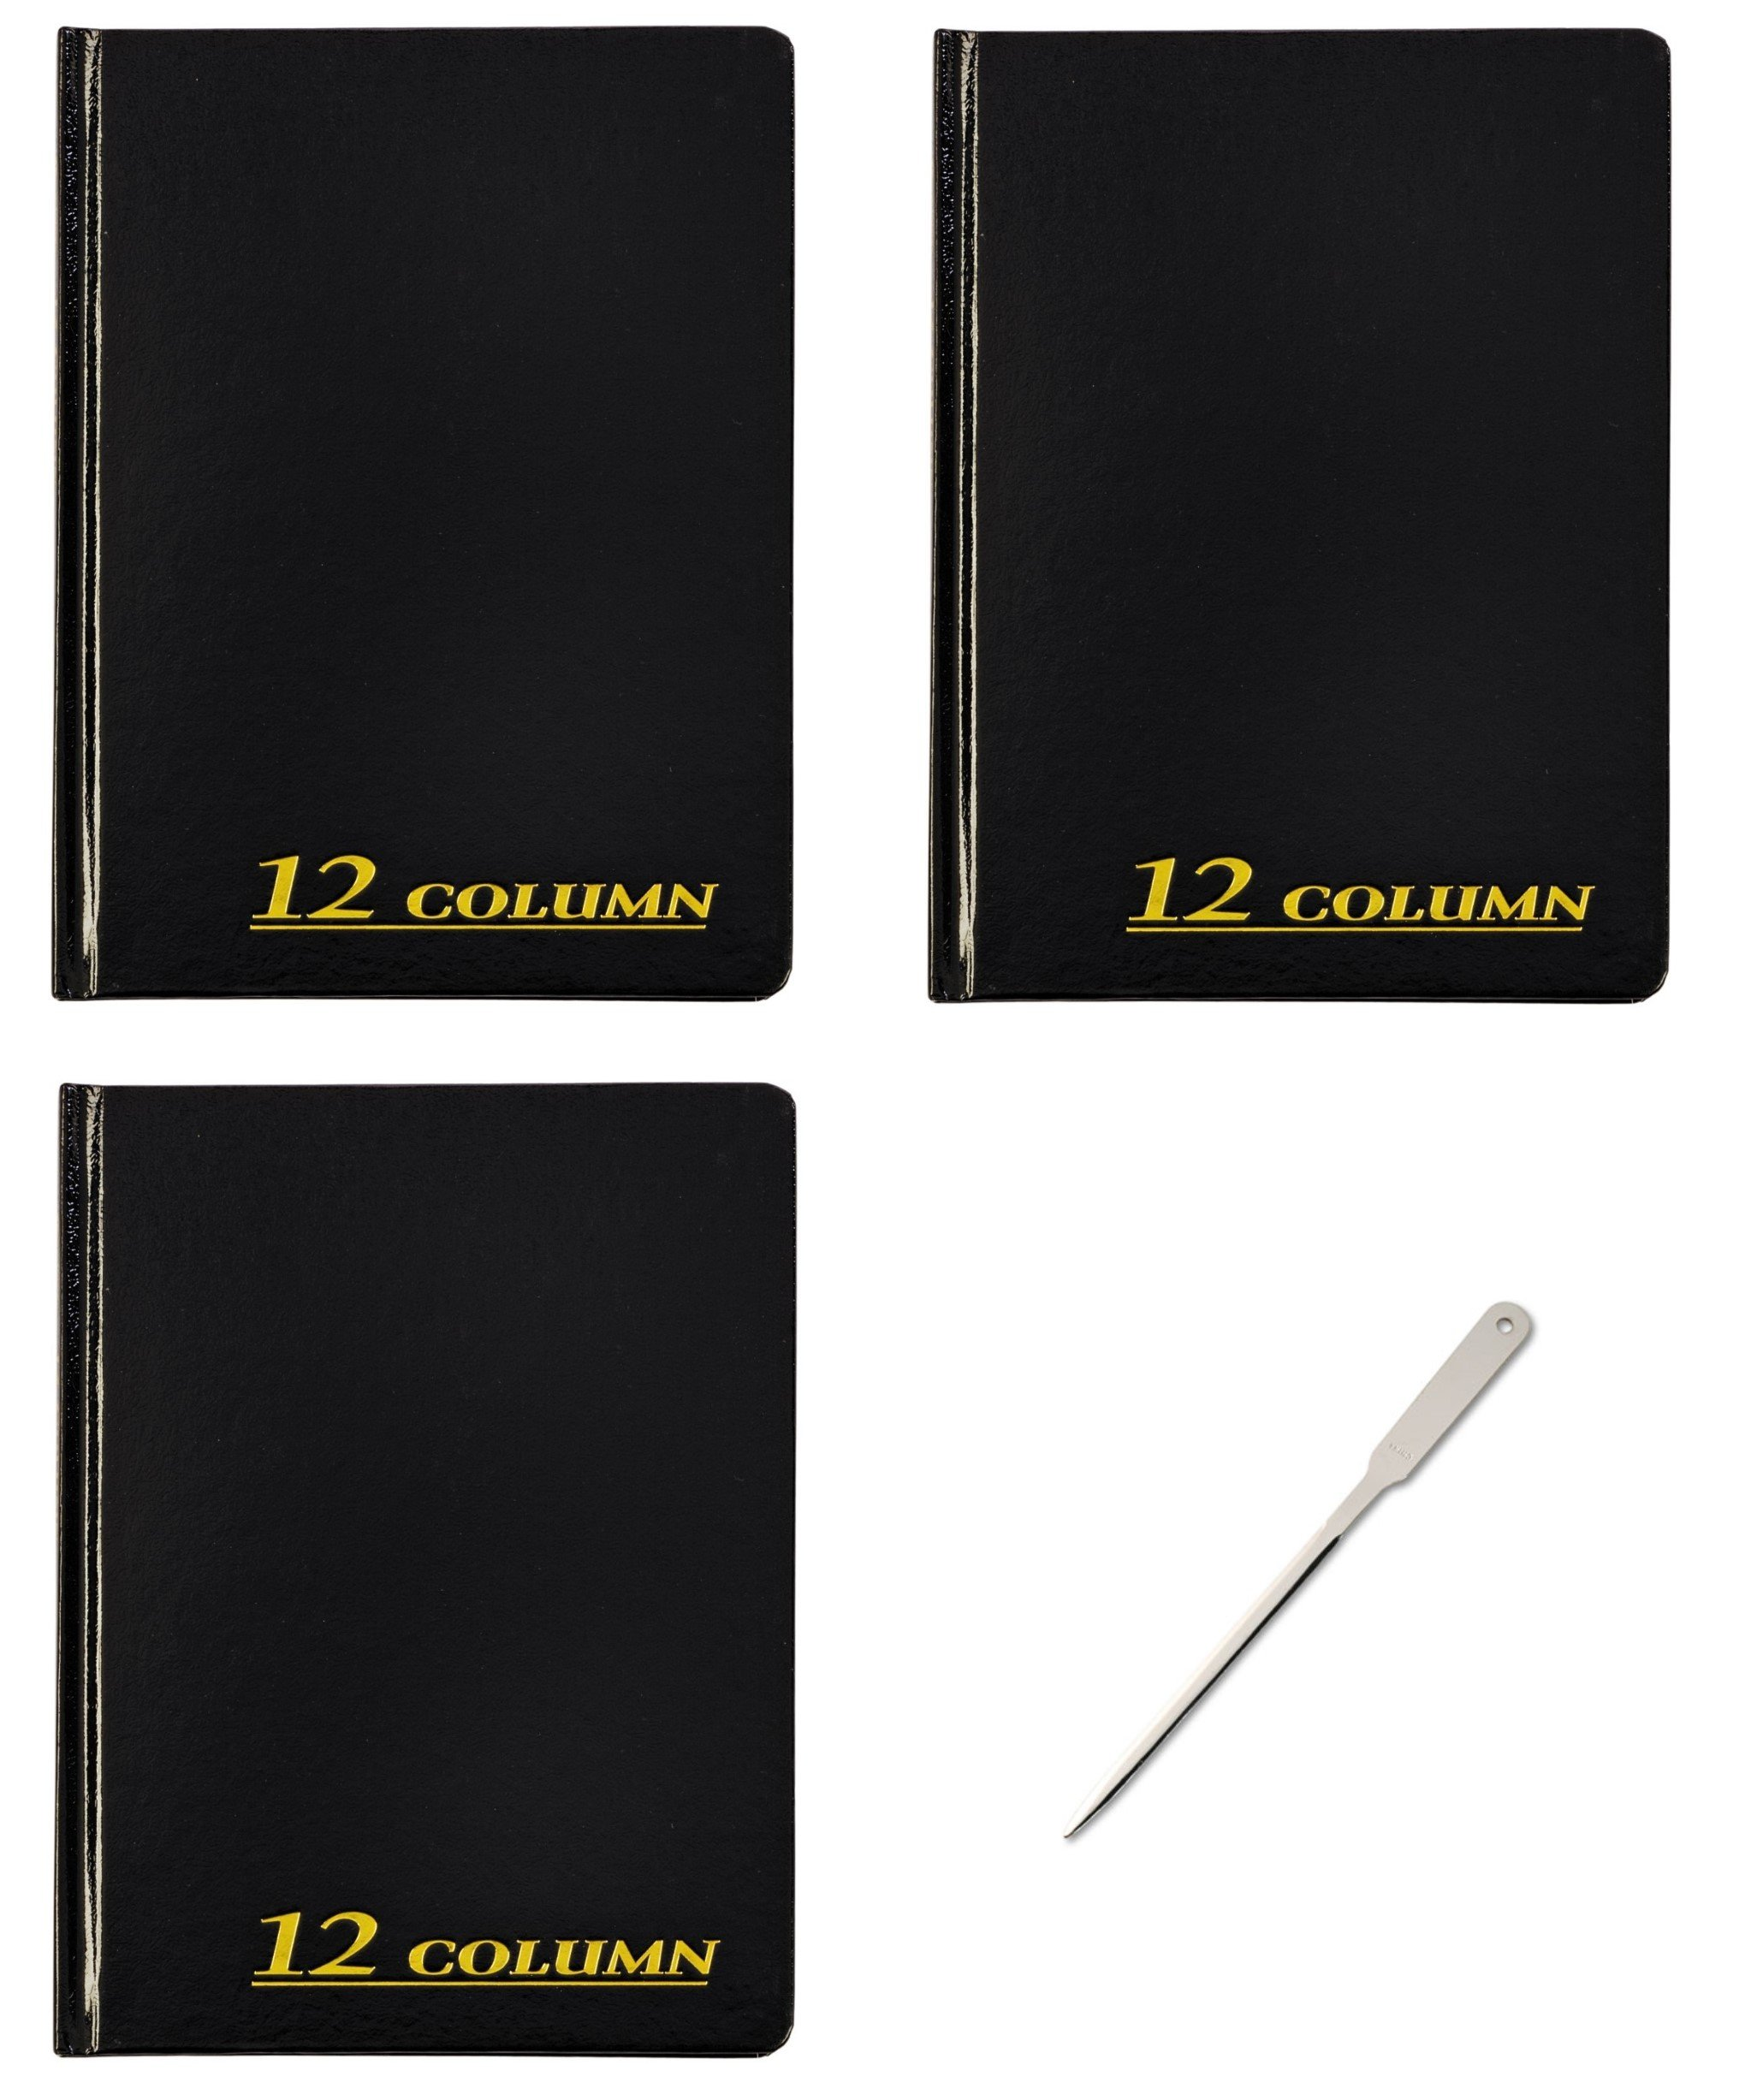 Adams Account Book, 12 Column, 7 x 9-1/4 inches, 80 Pages, 3 Books (ARB8012M) - Bundle Includes Universal Letter Opener (3 Pack Bundle)